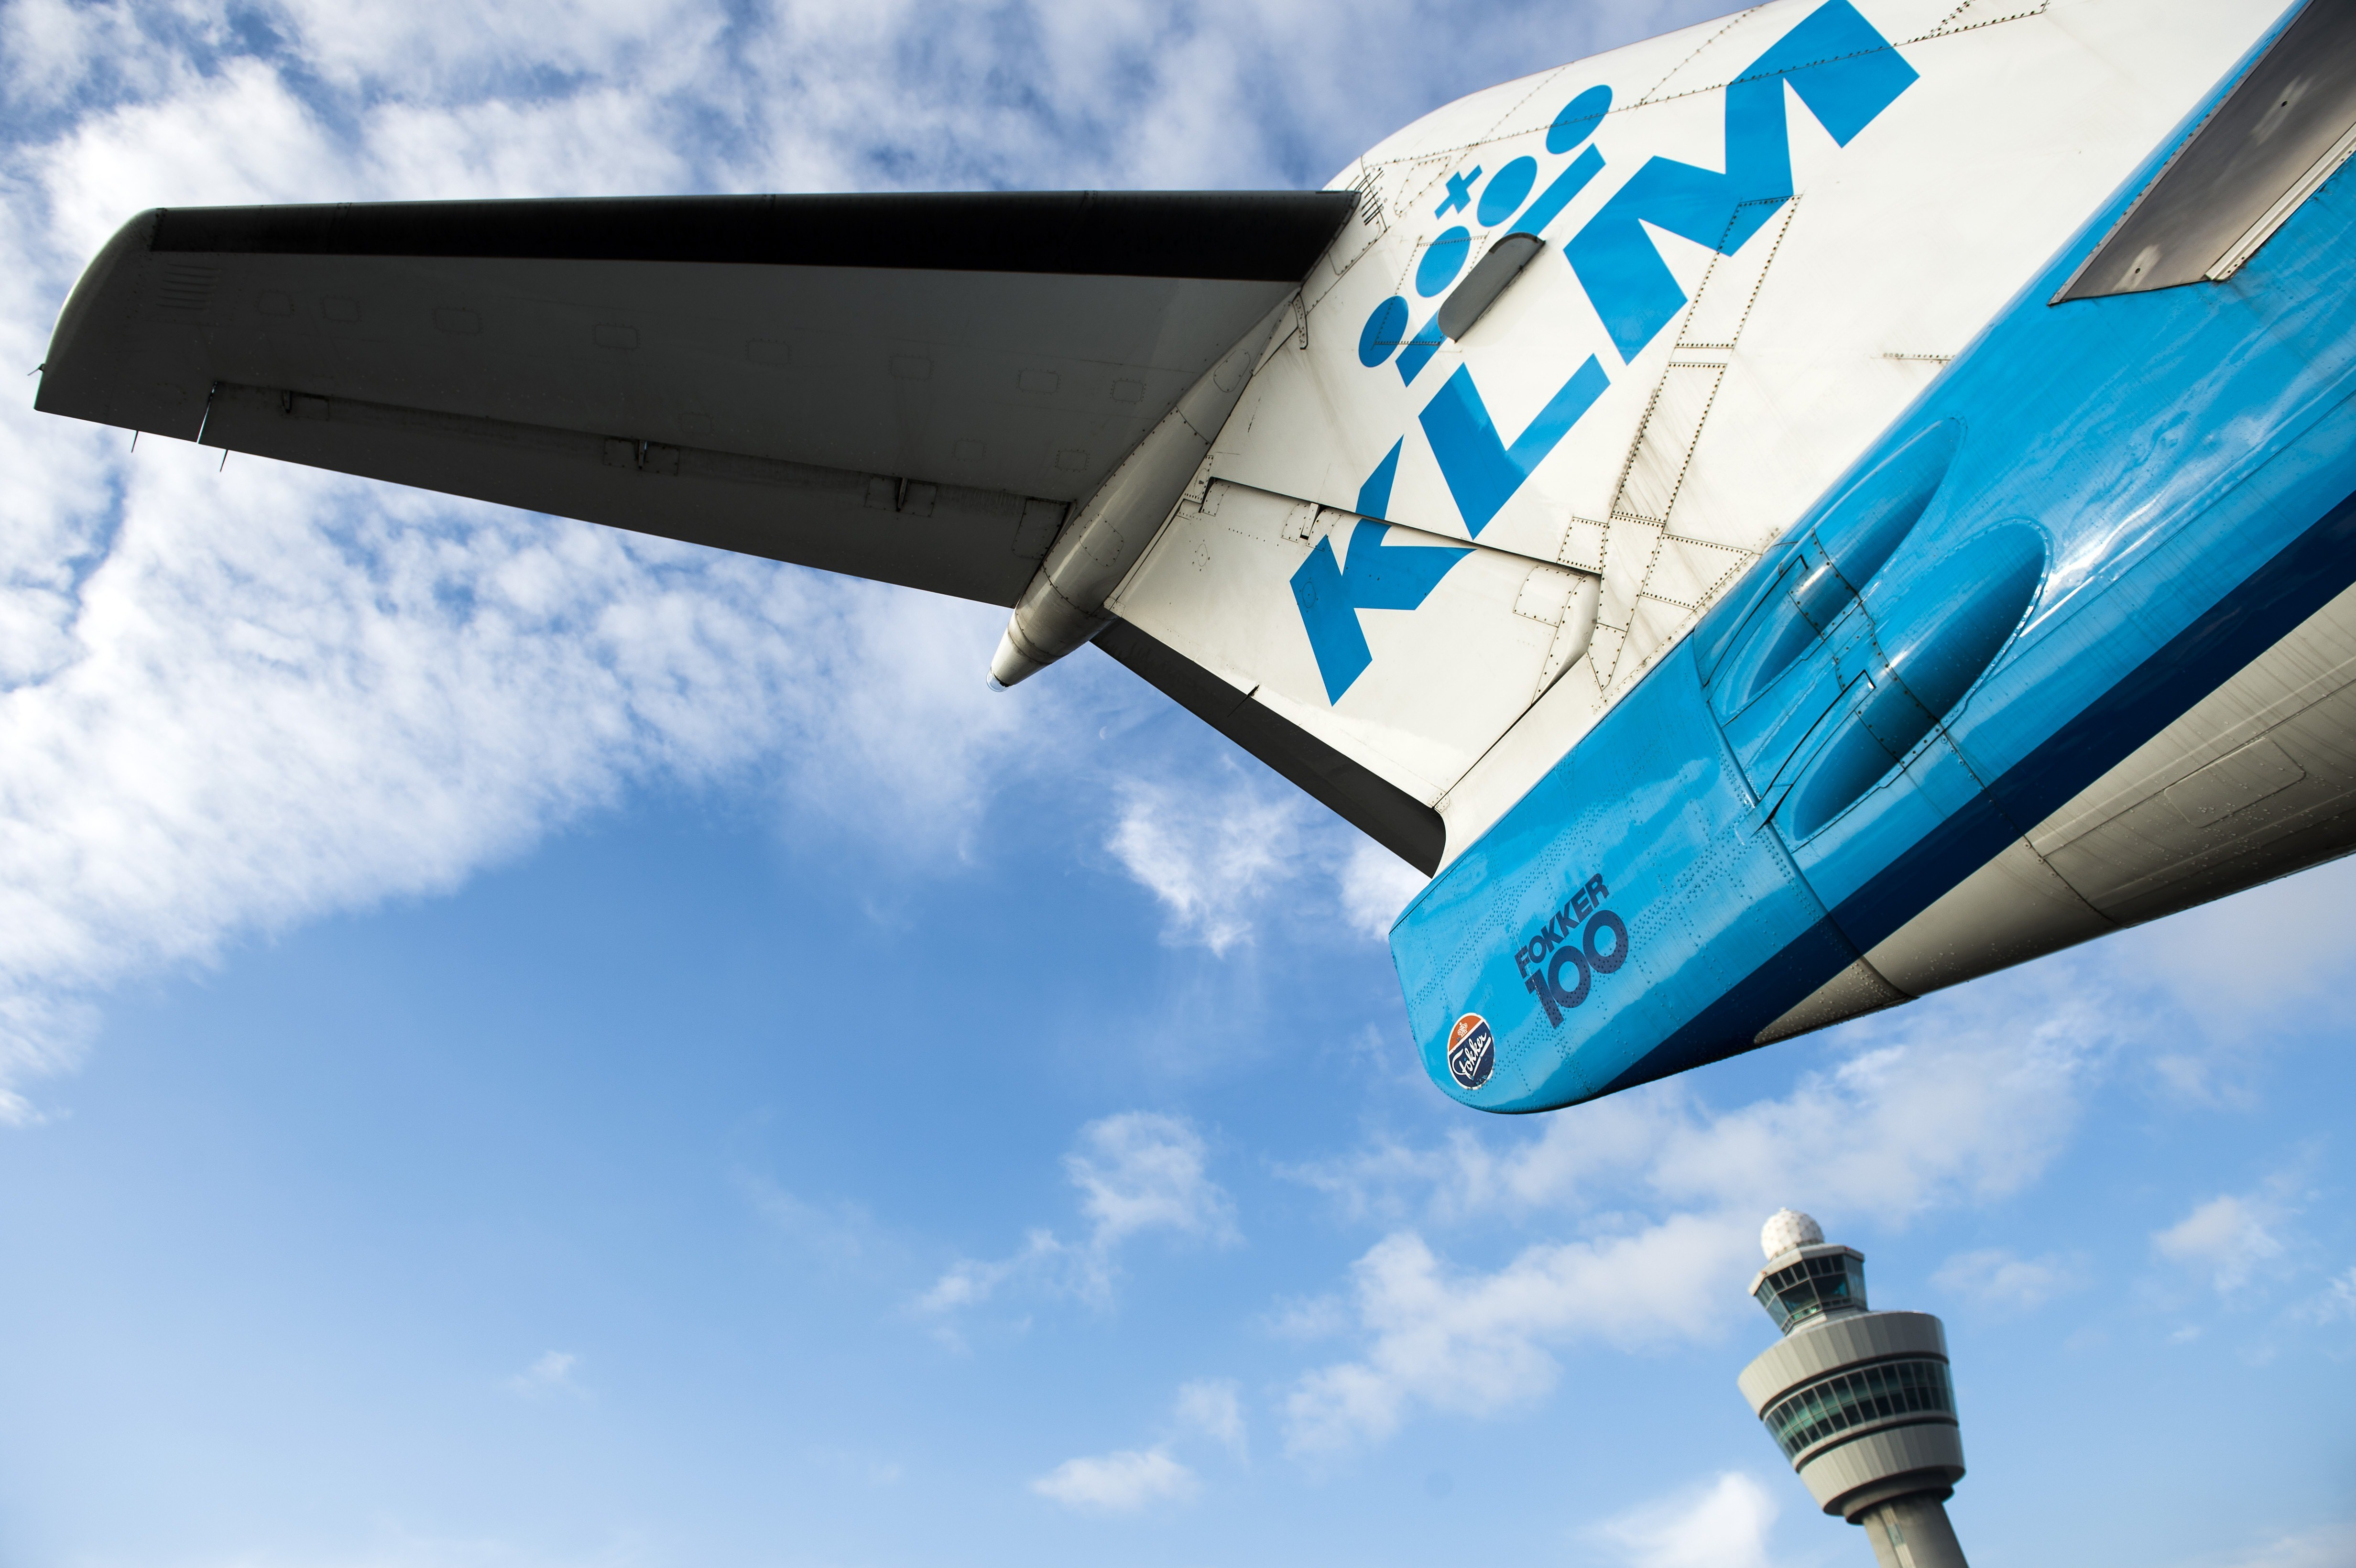 A KLM aircraft is pictured at the Schiphol airport on October 16, 2014.